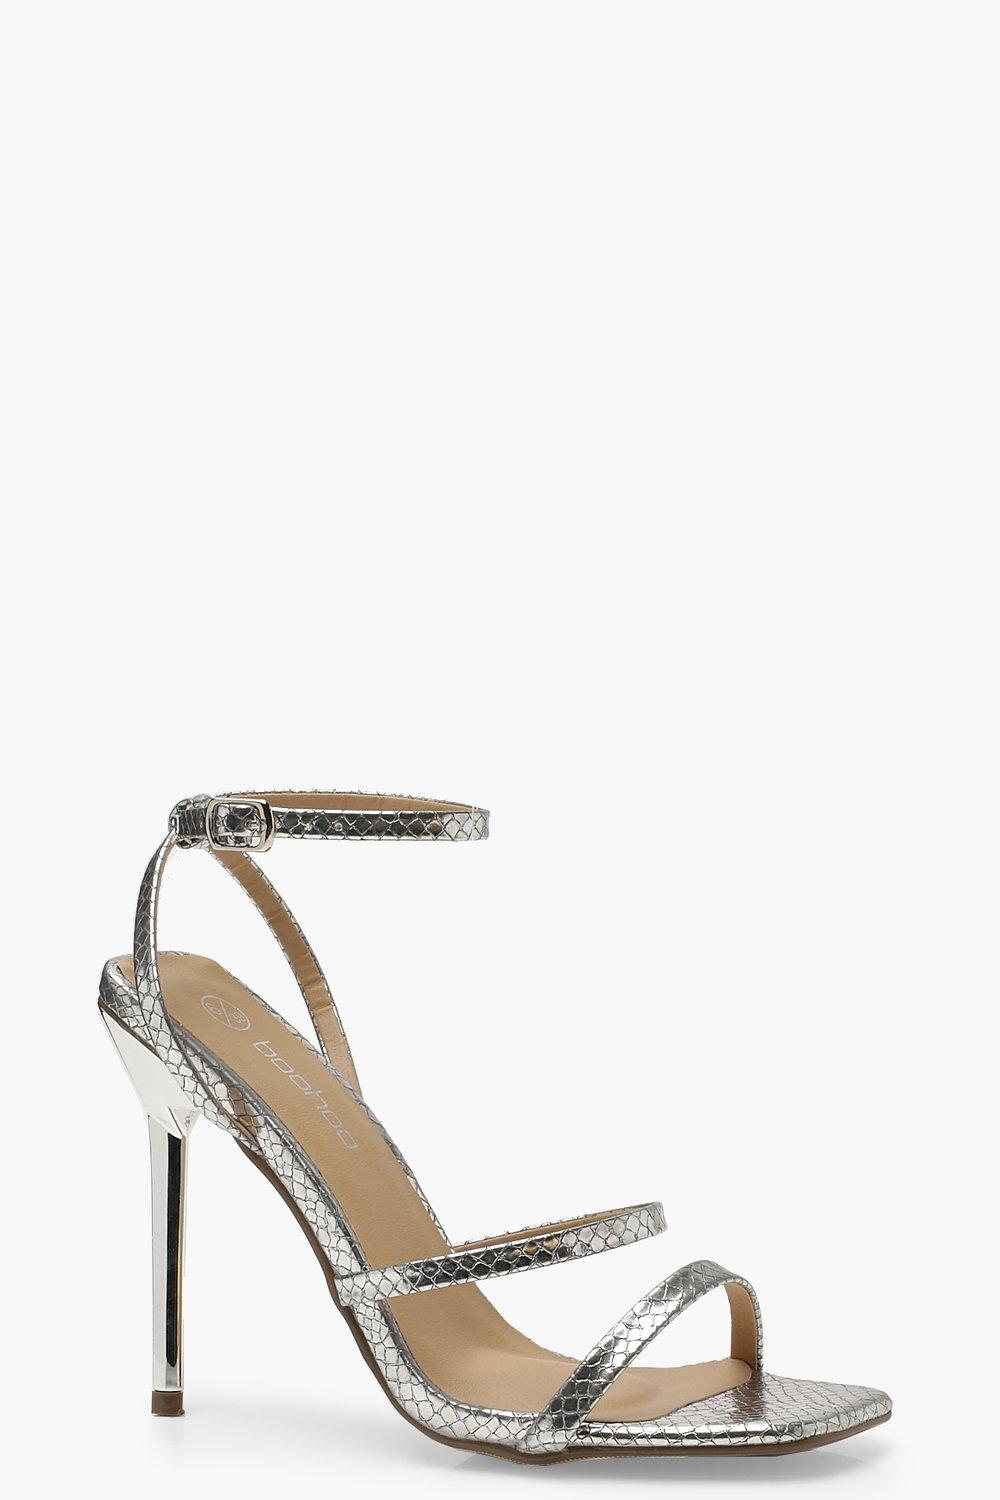 Snake Square Toe Cushion Heels